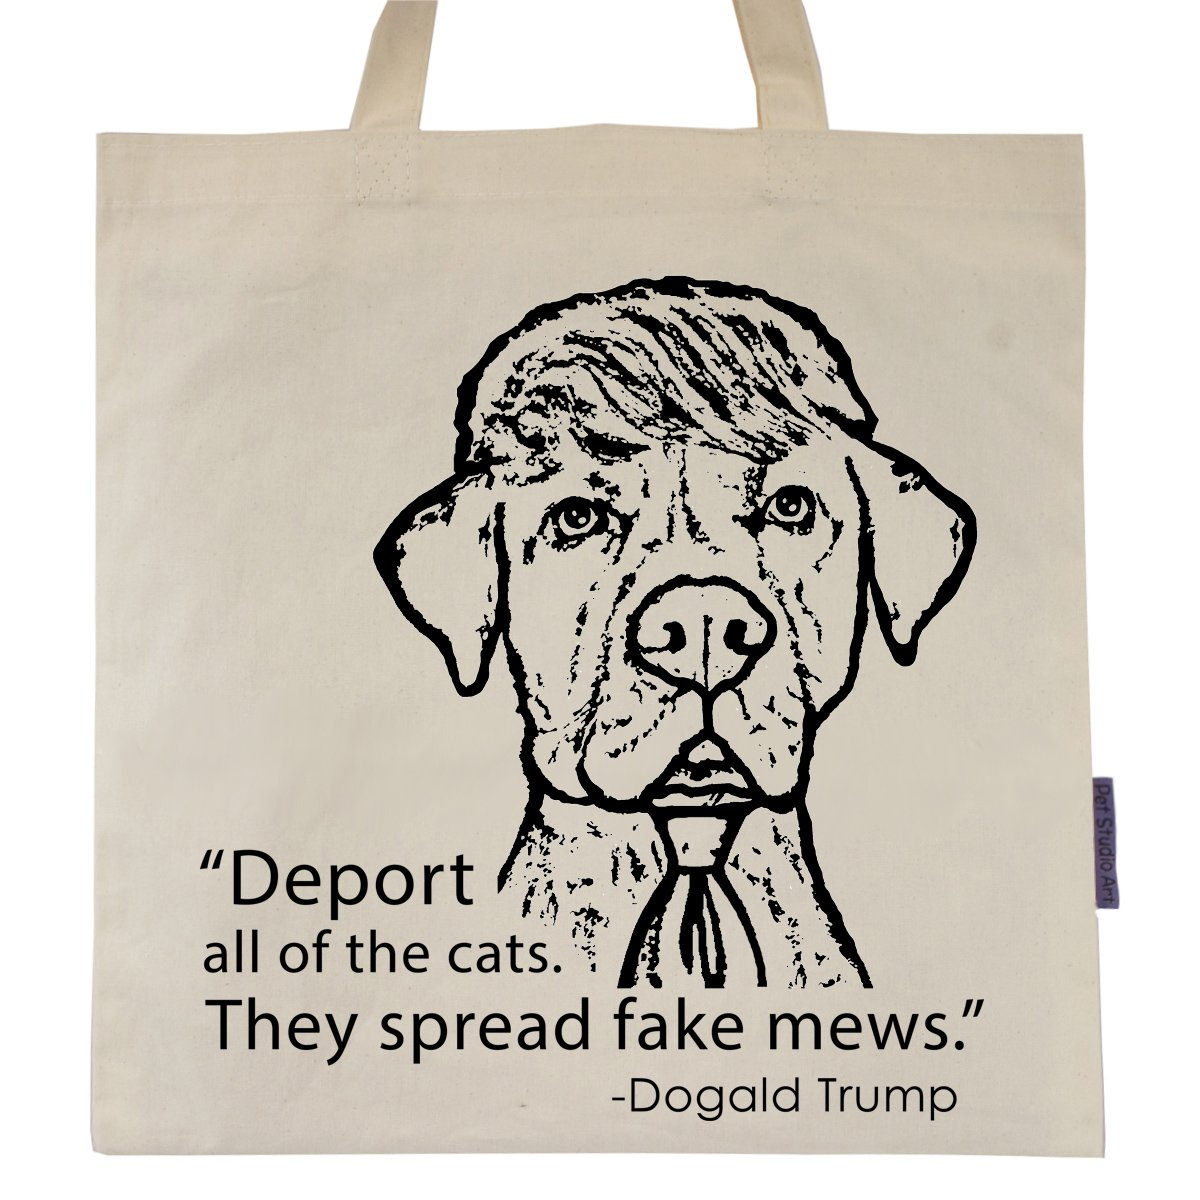 Funny Dog Tote Bag by Pet Studio Art (The Dogald)